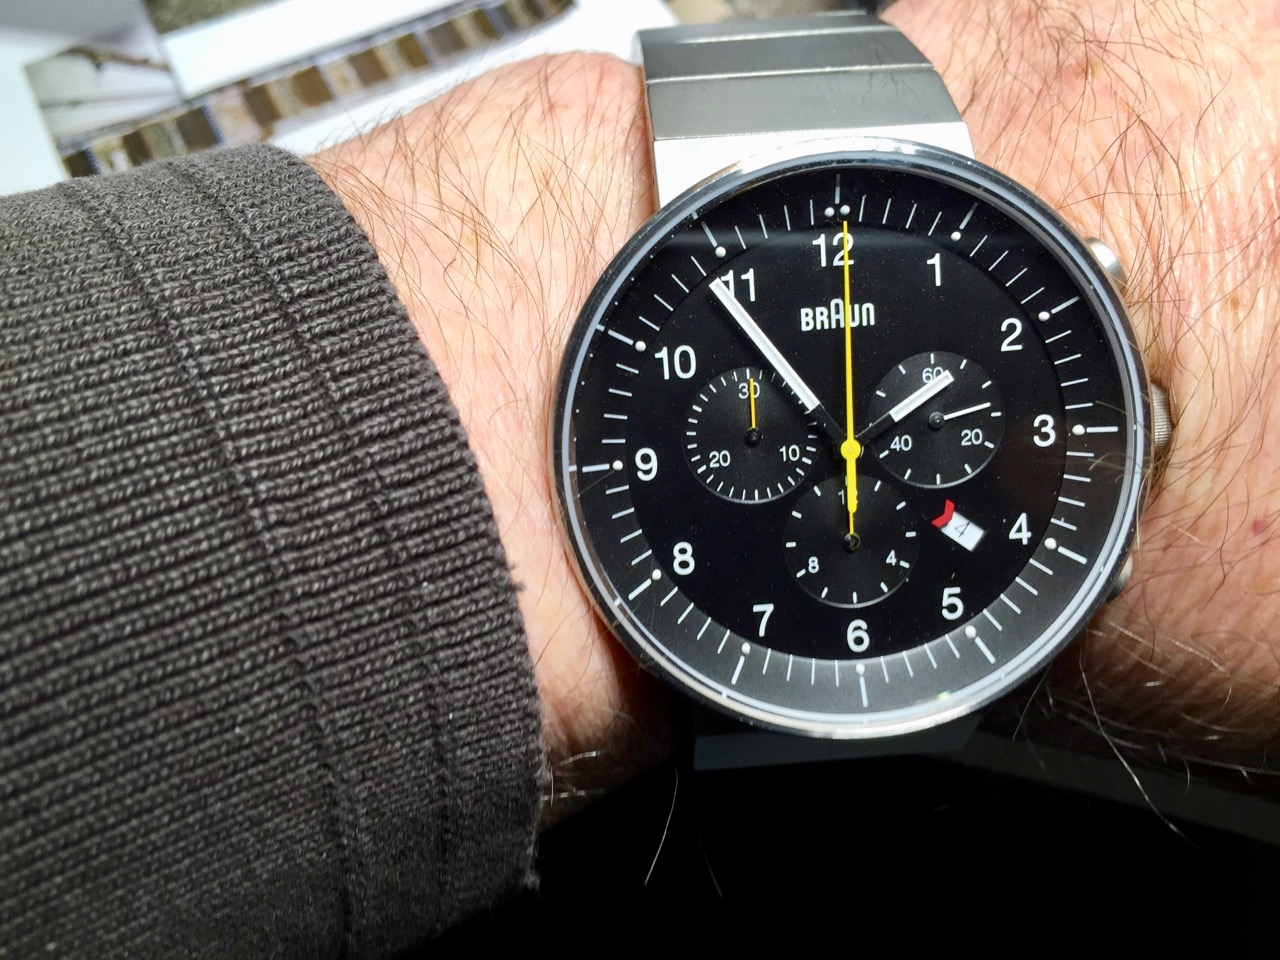 The Braun chronograph, designed by associates of Dieter Rams, one of the great industrial designers of the 20th century